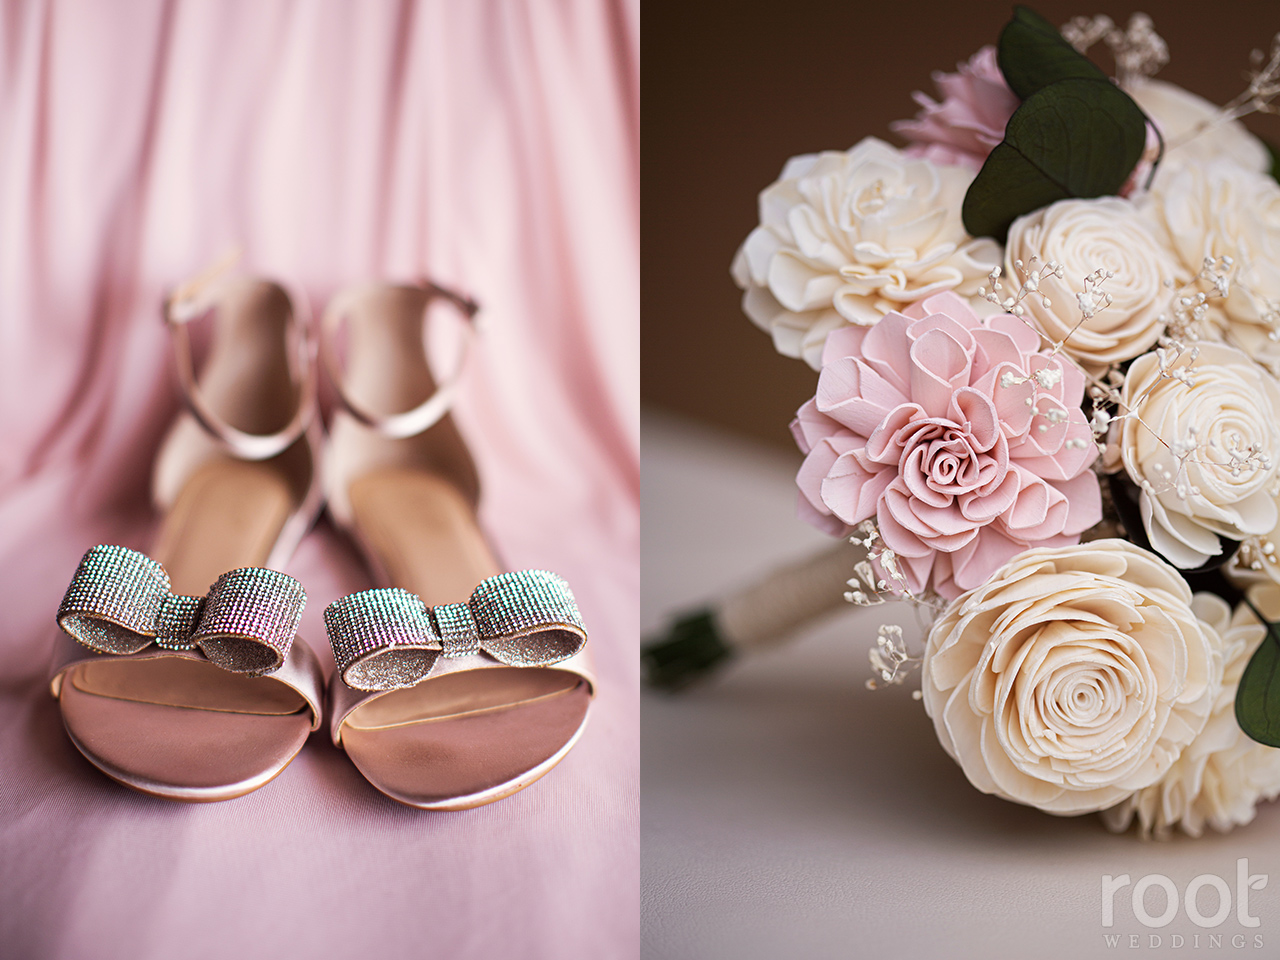 Blush pink bridesmaid dress and silver bow shoes